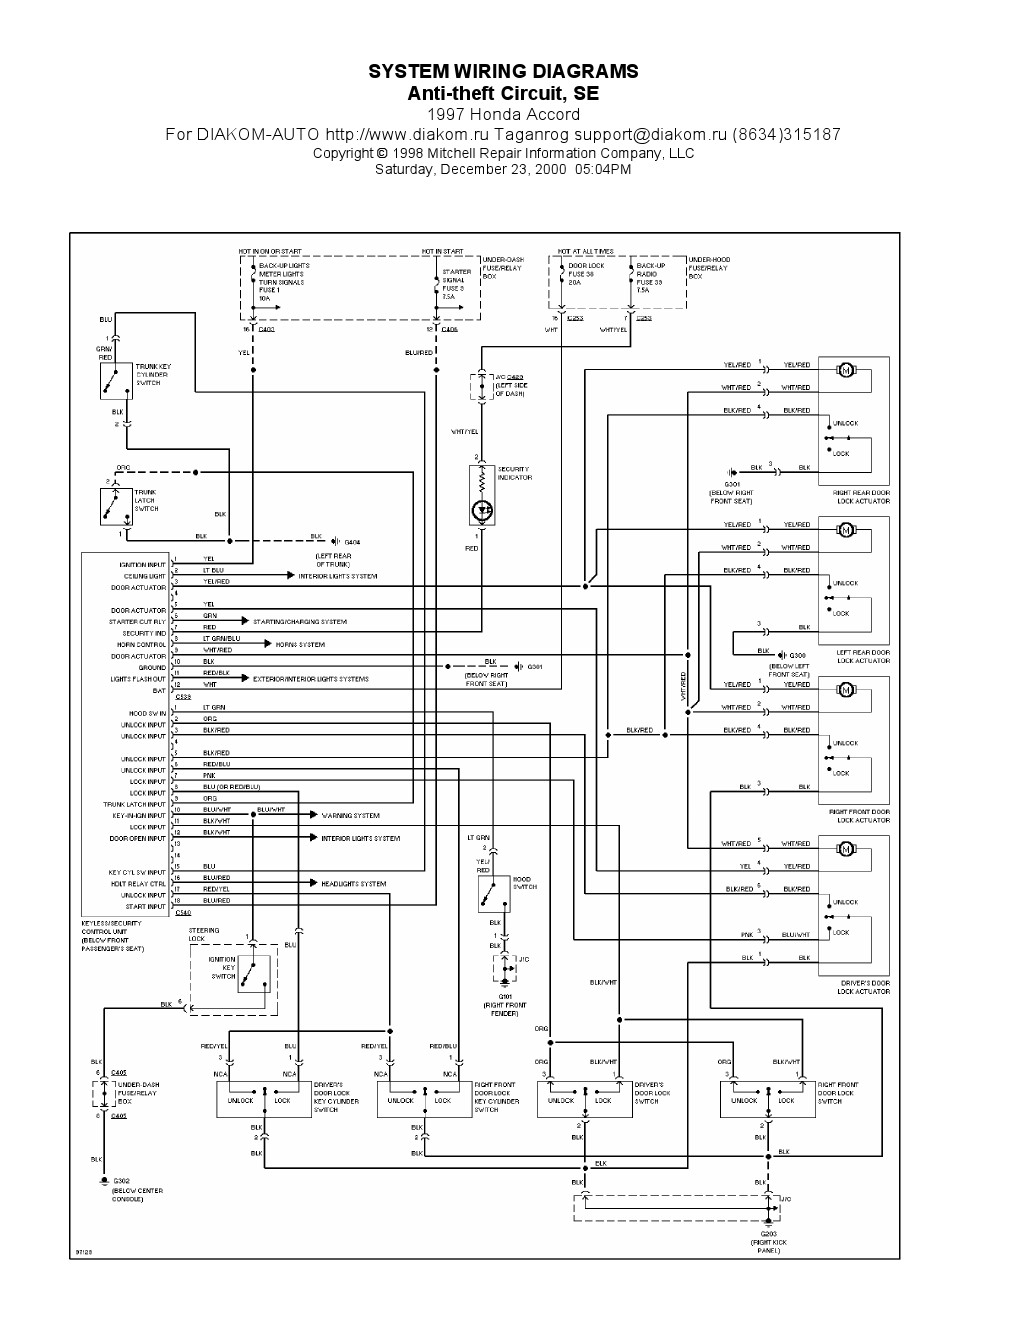 schematic 2007 honda accord engine diagram  u2022 wiring diagram for free